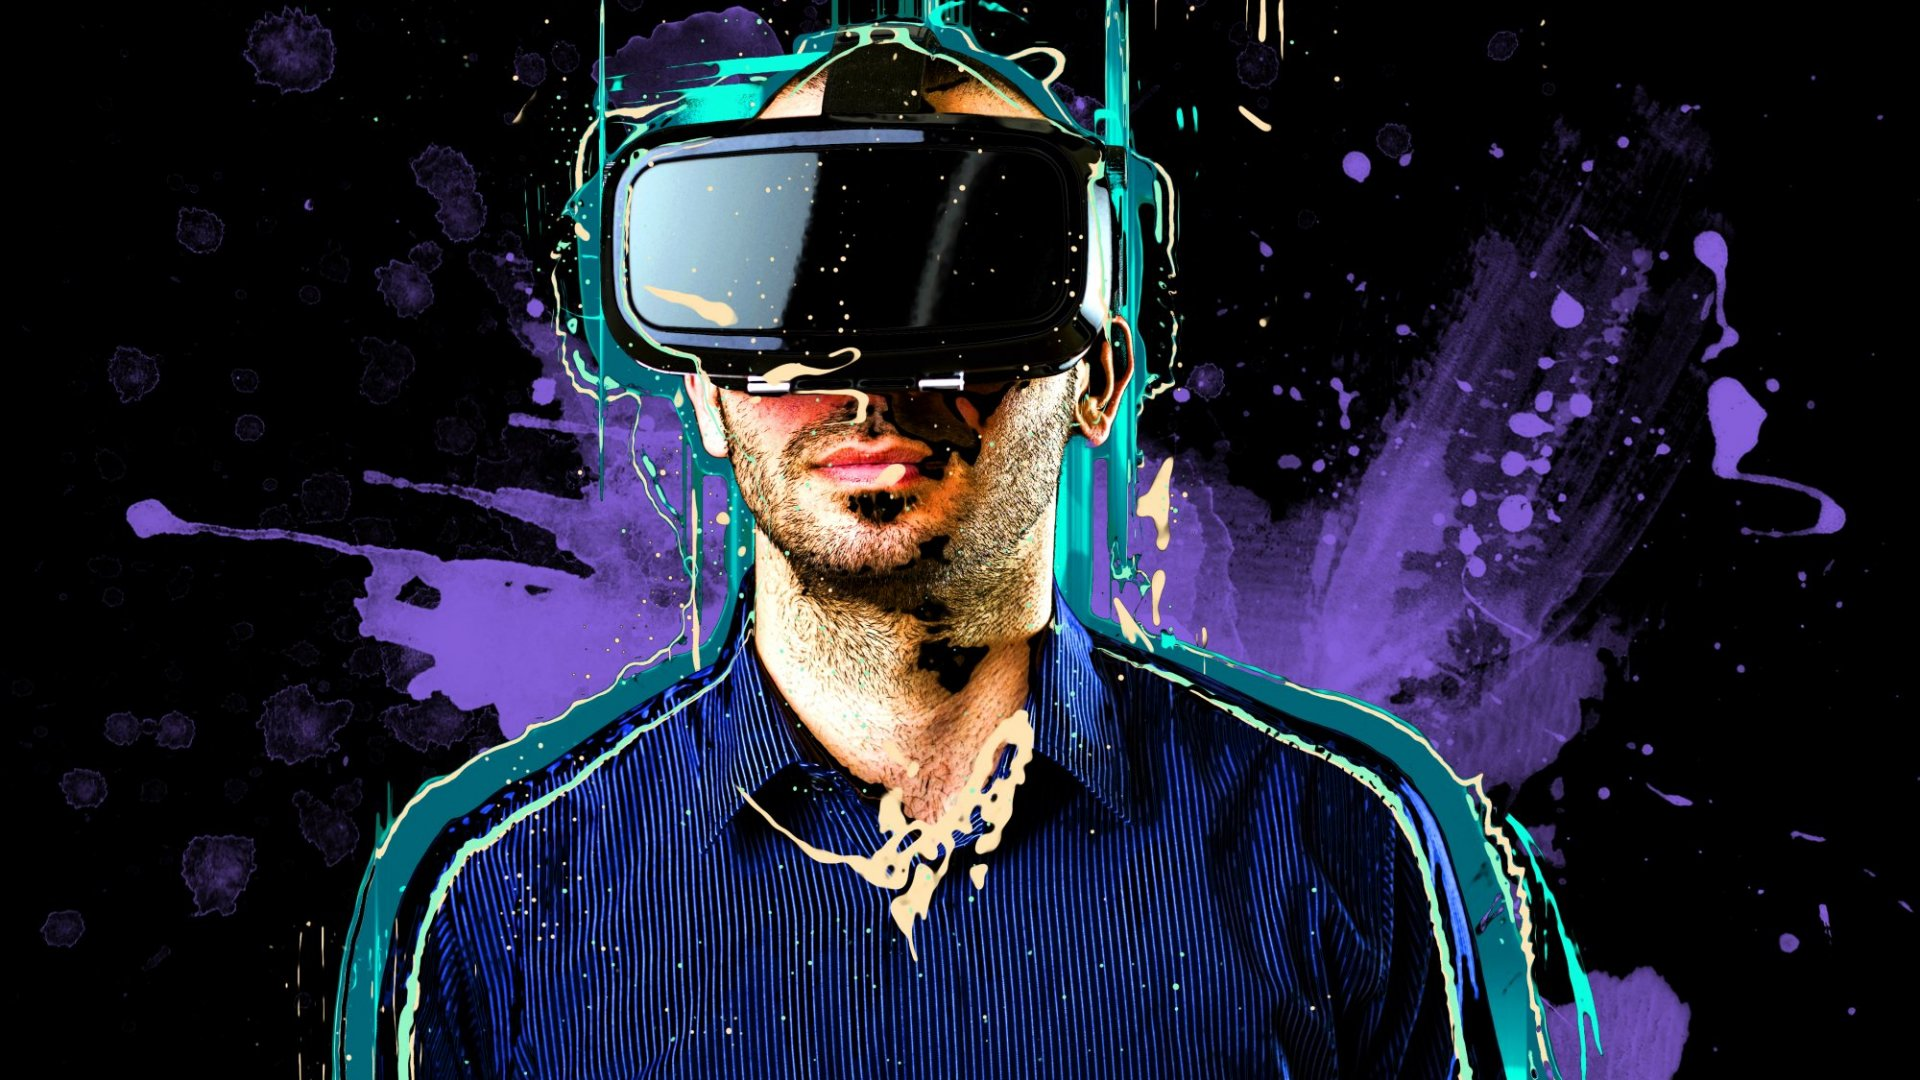 Immerse yourself in the comic book world - VR-style!